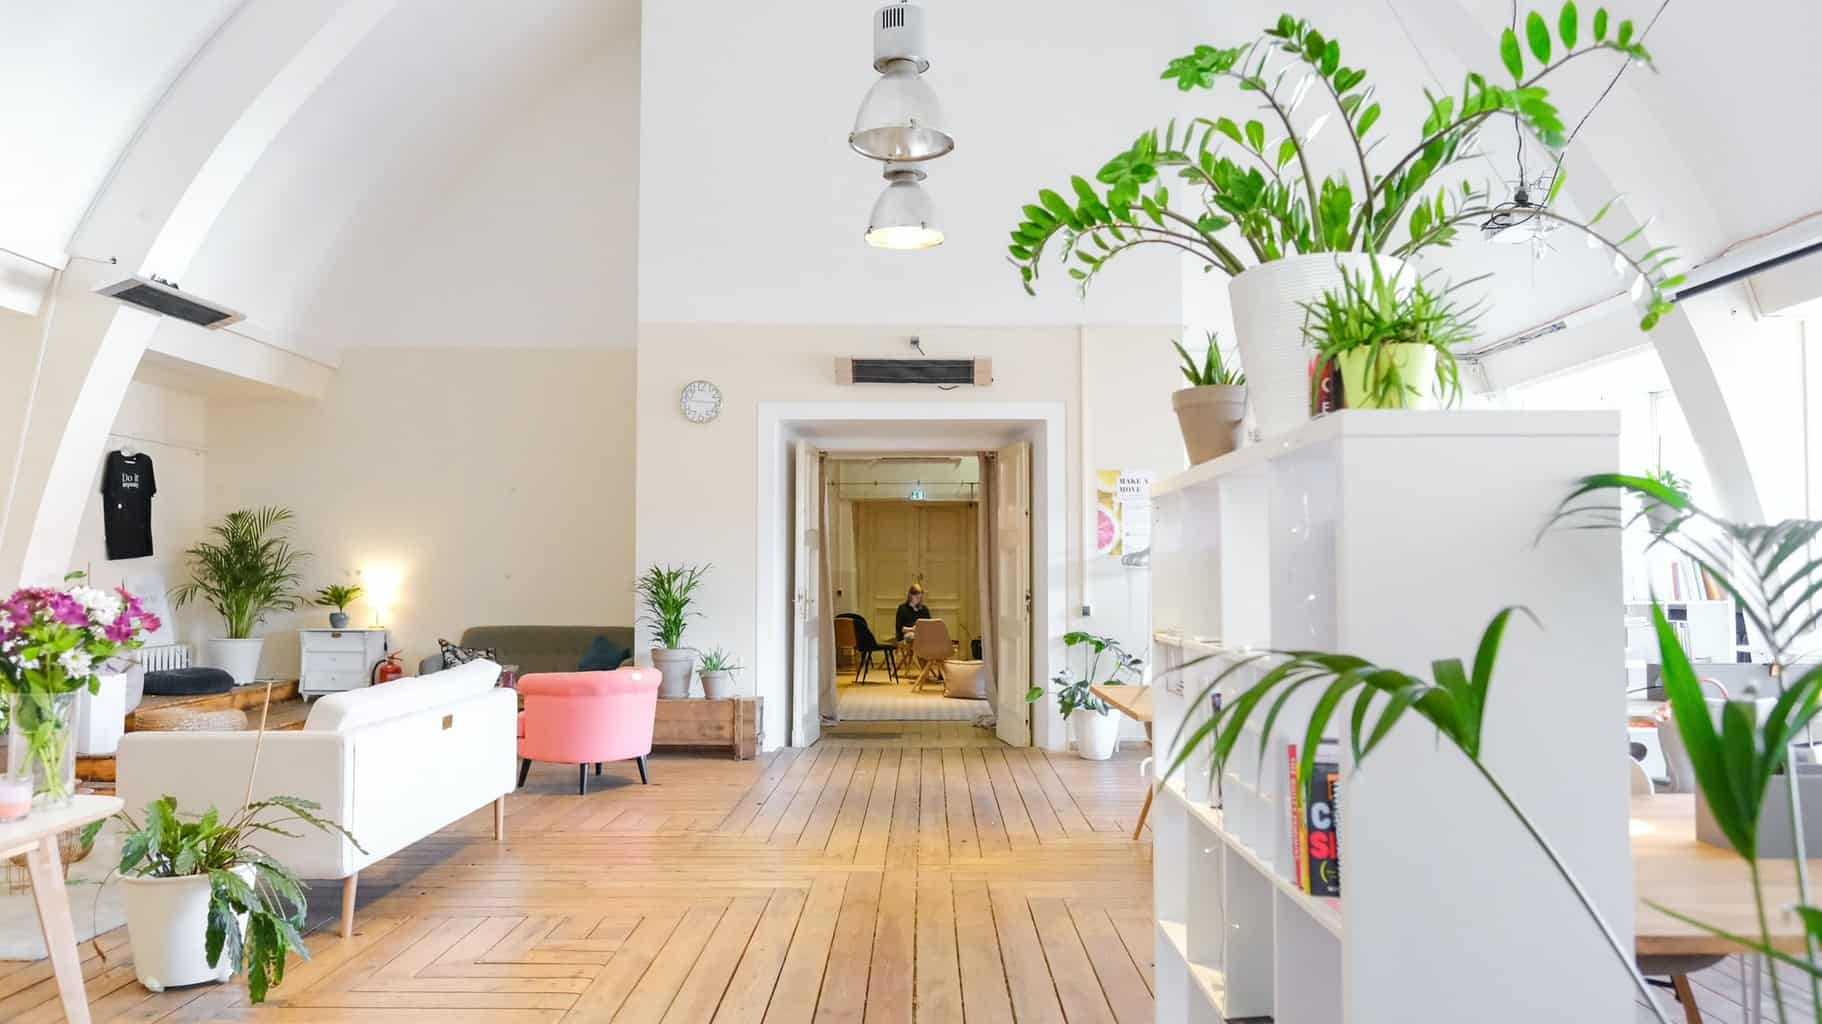 Large living space with a timber floor